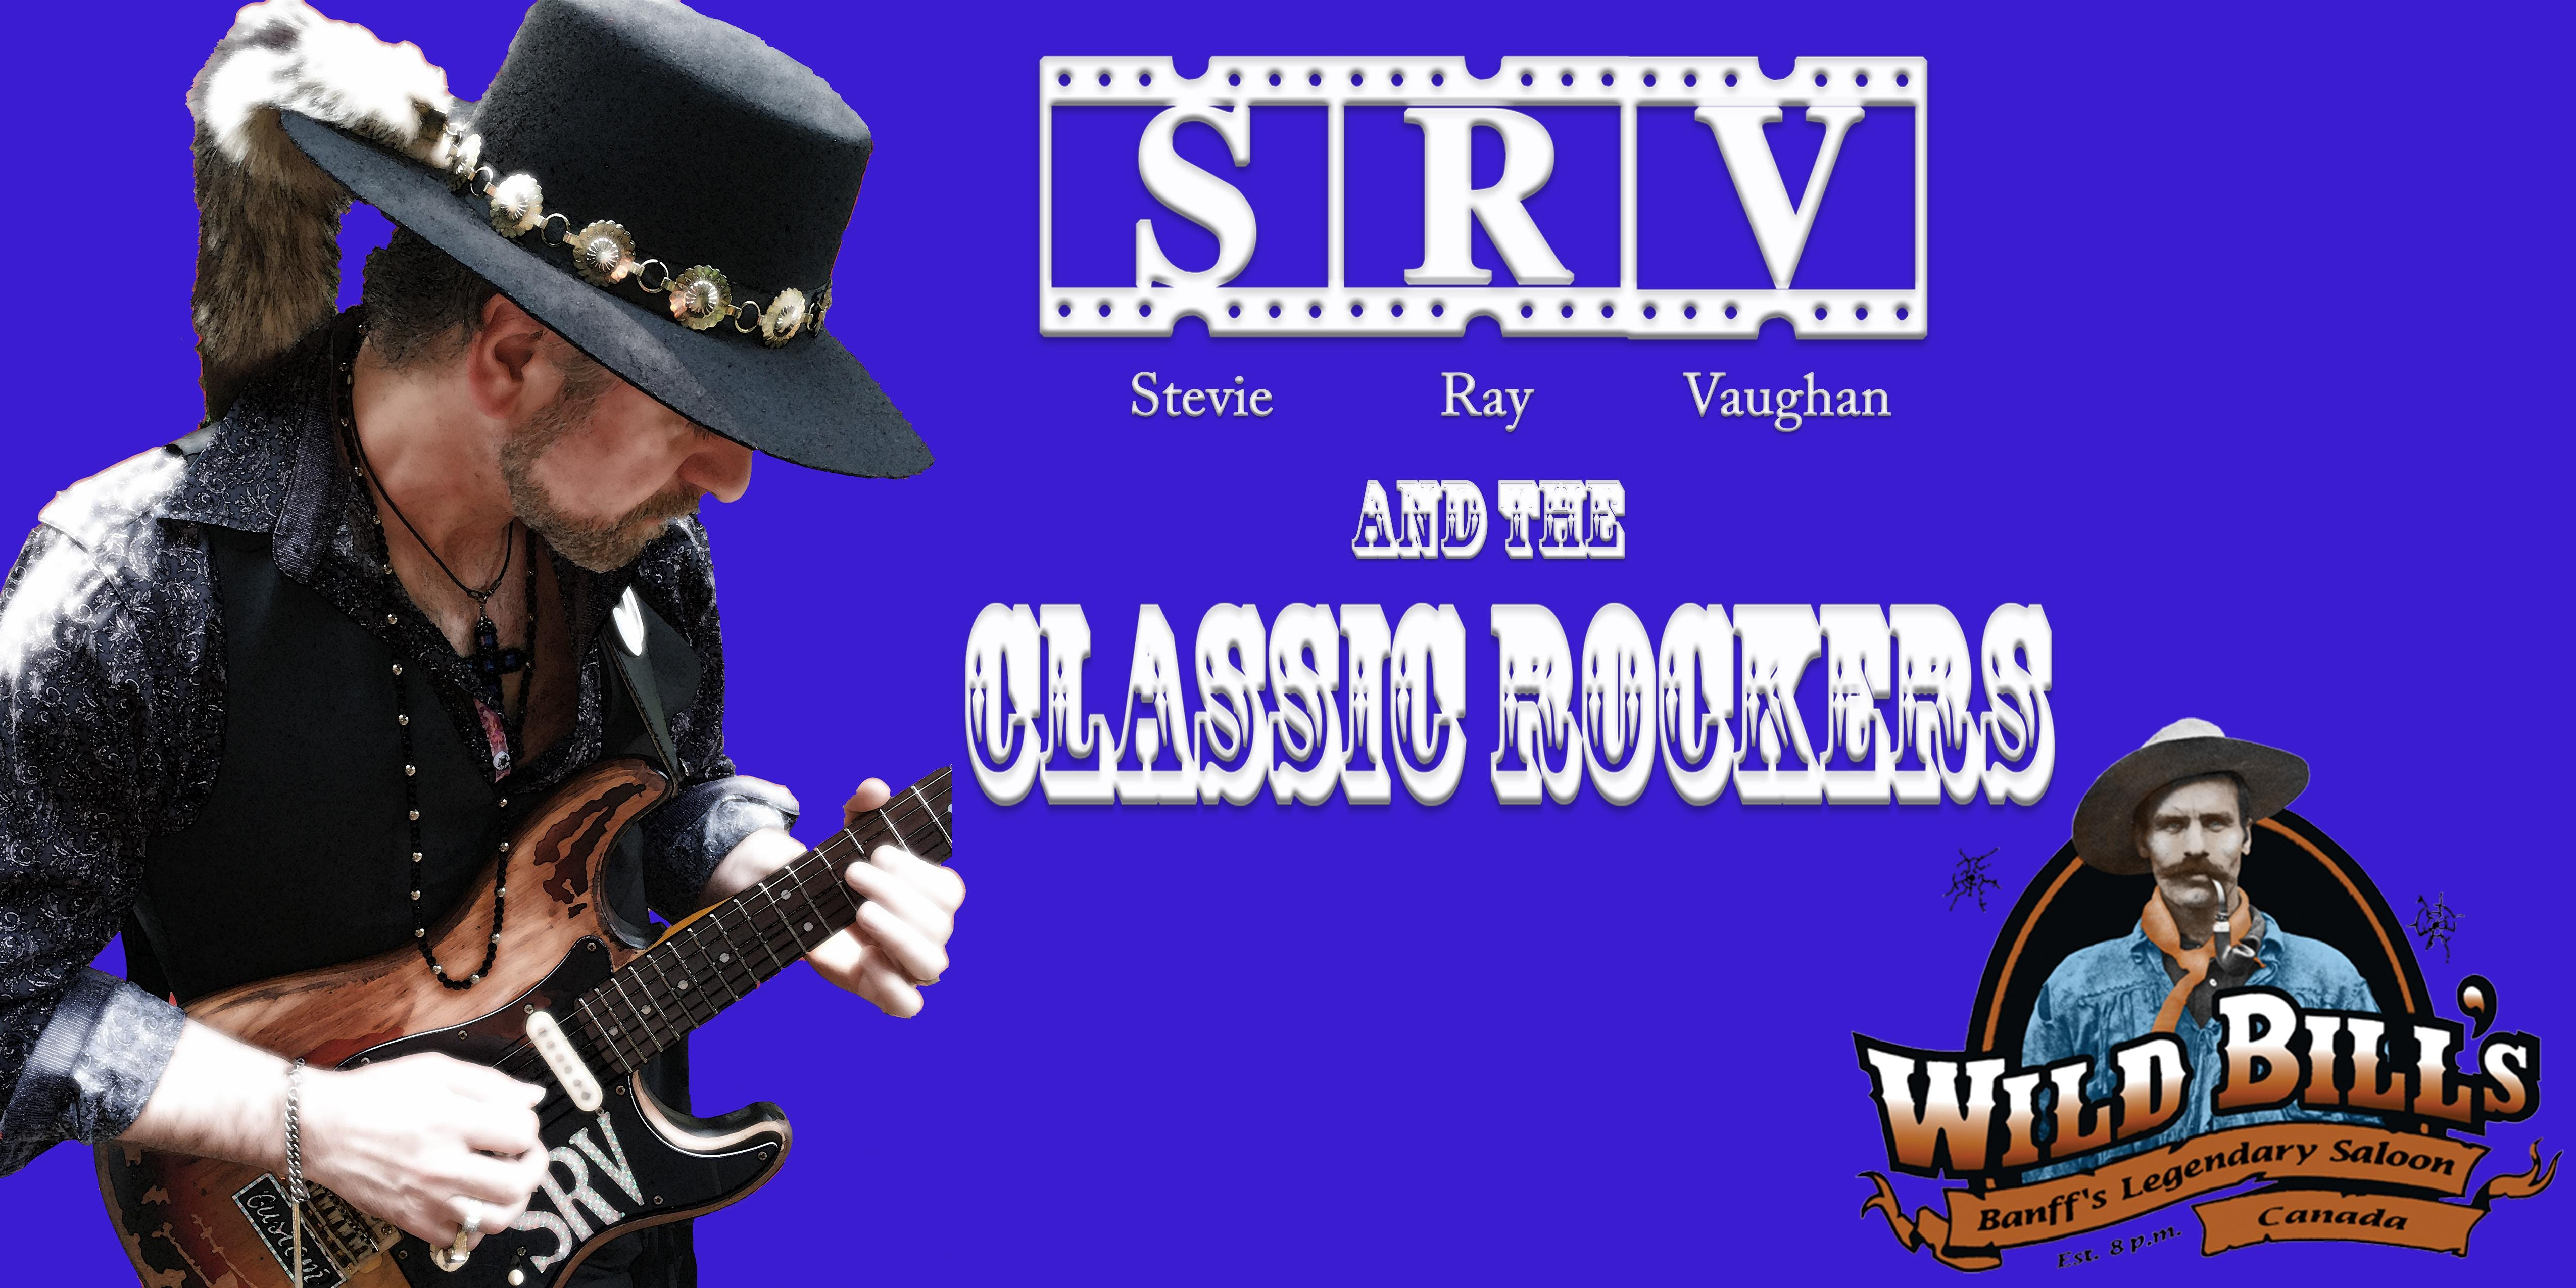 SRV and the Classic Rockers